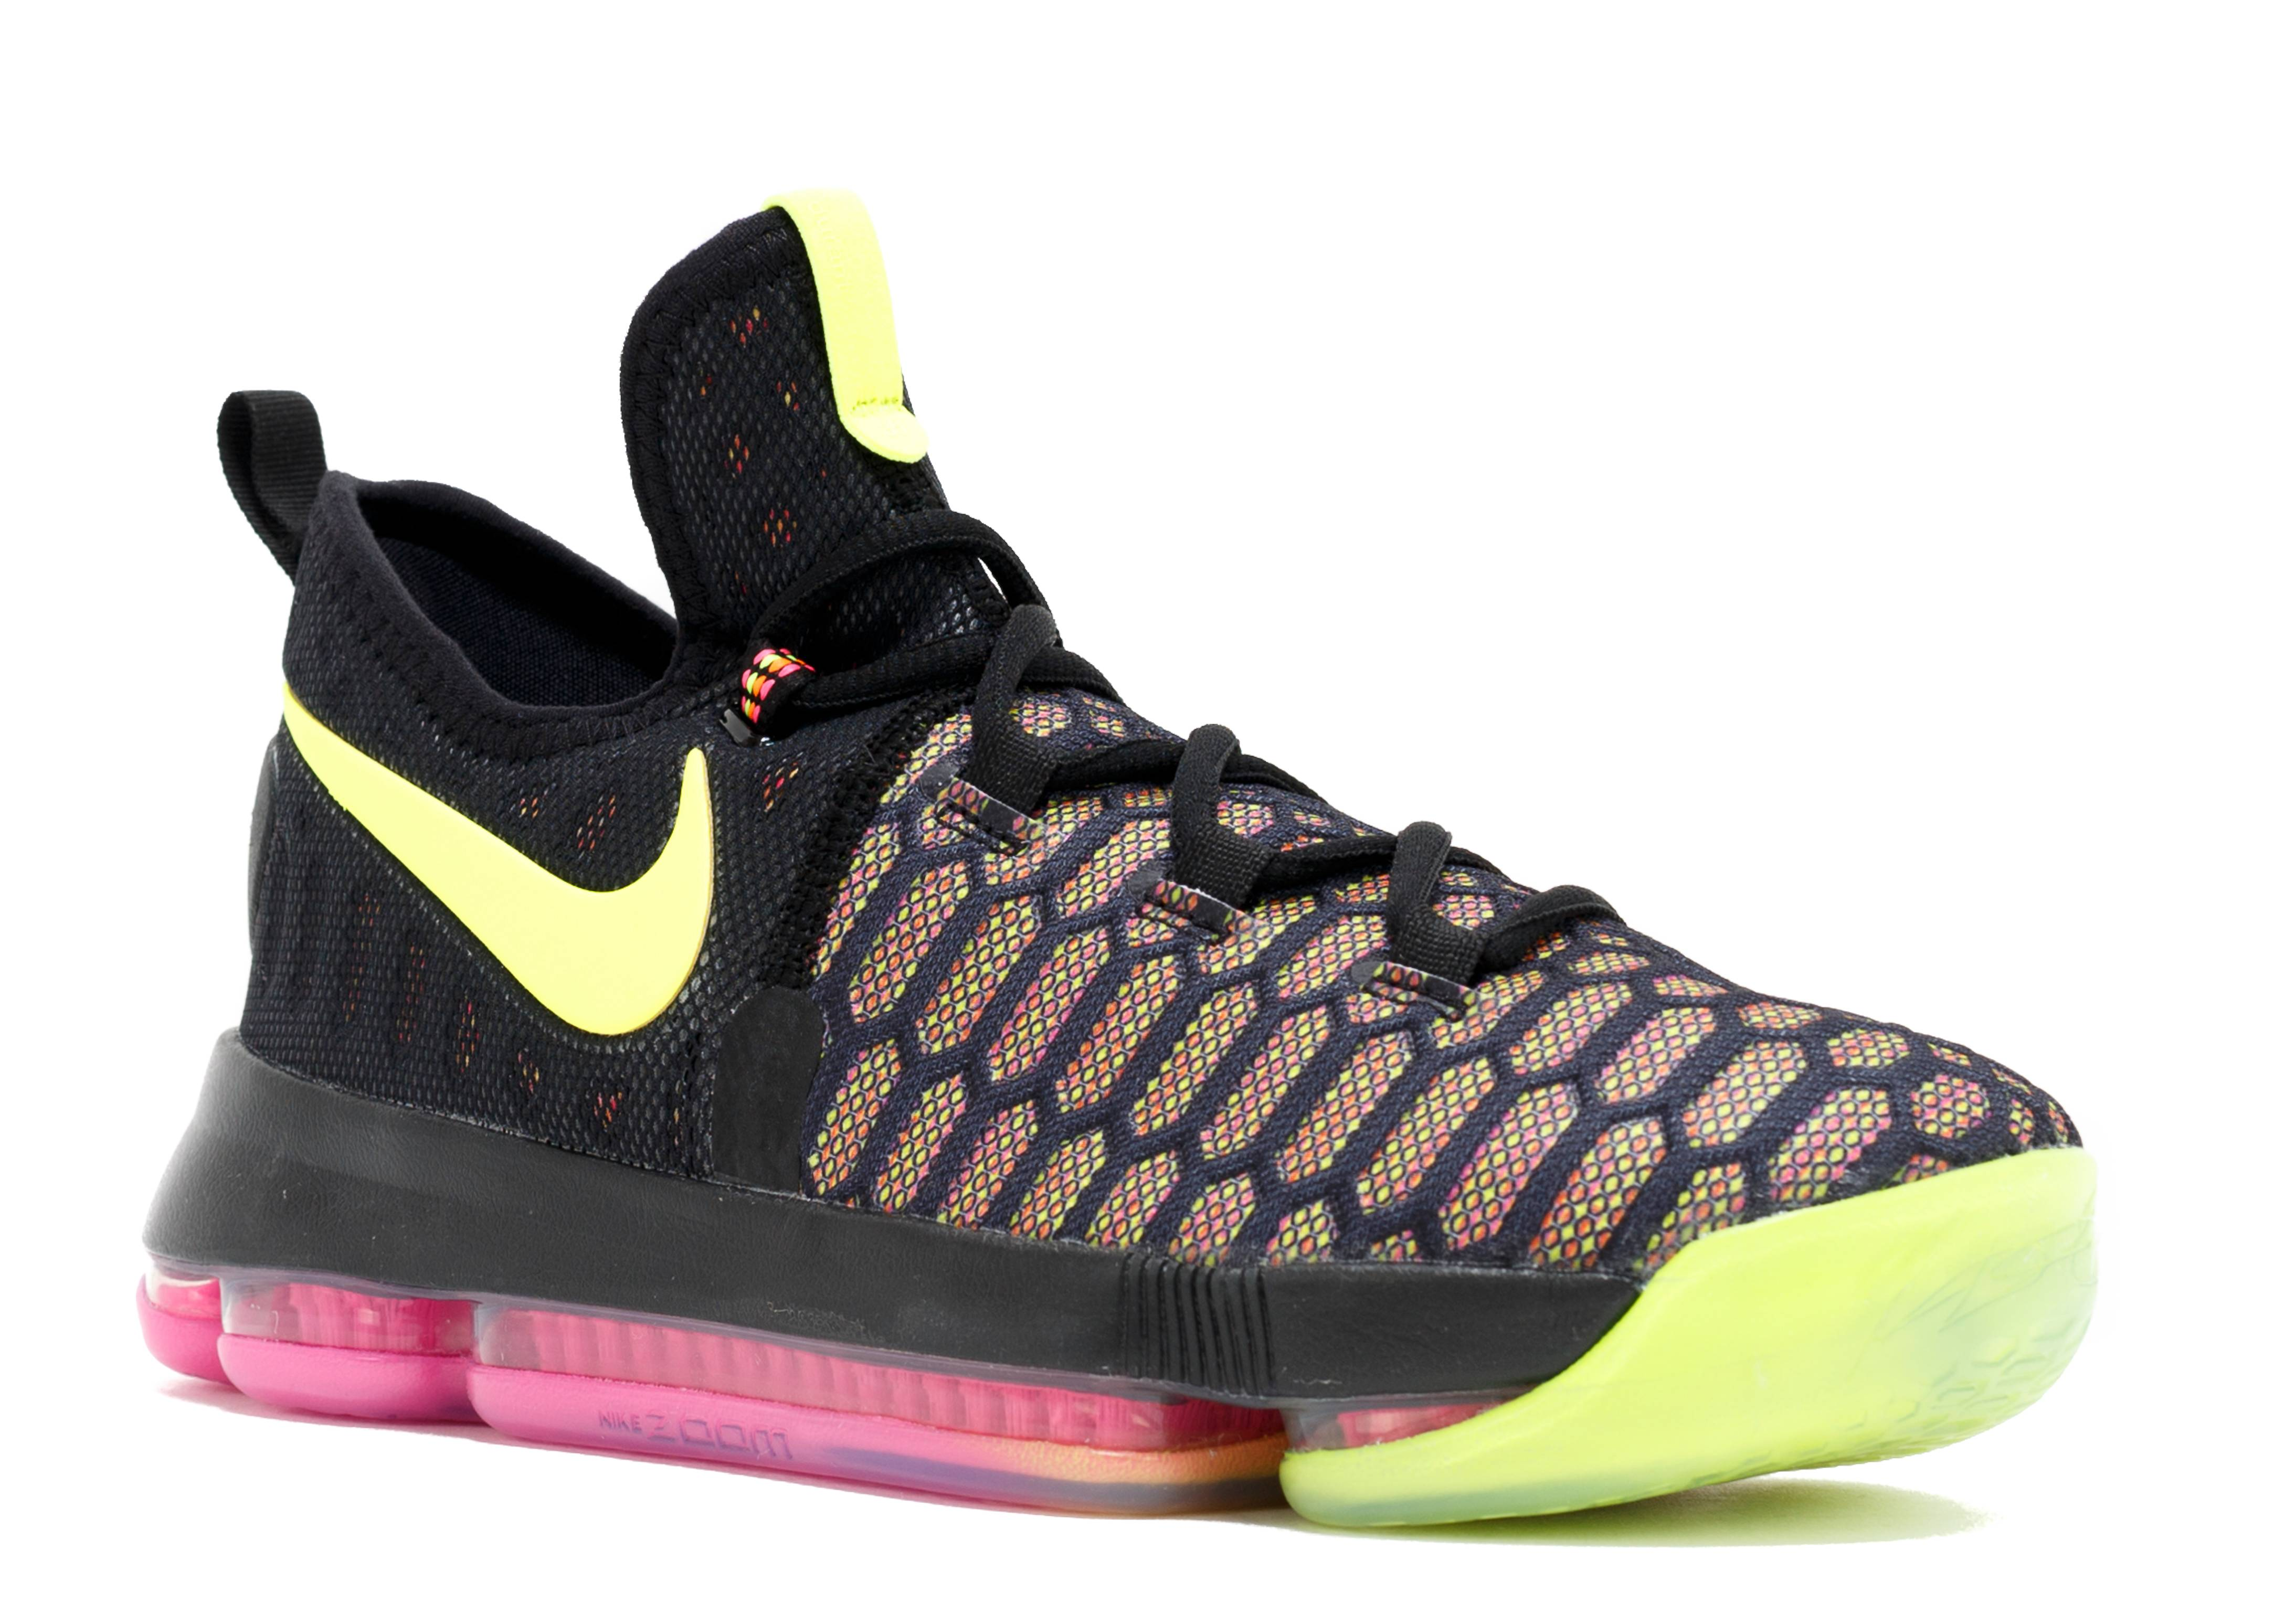 Zoom KD 9 (GS) 'Unlimited' - 855908-999 - Size 5.5 - Qvx1Pq